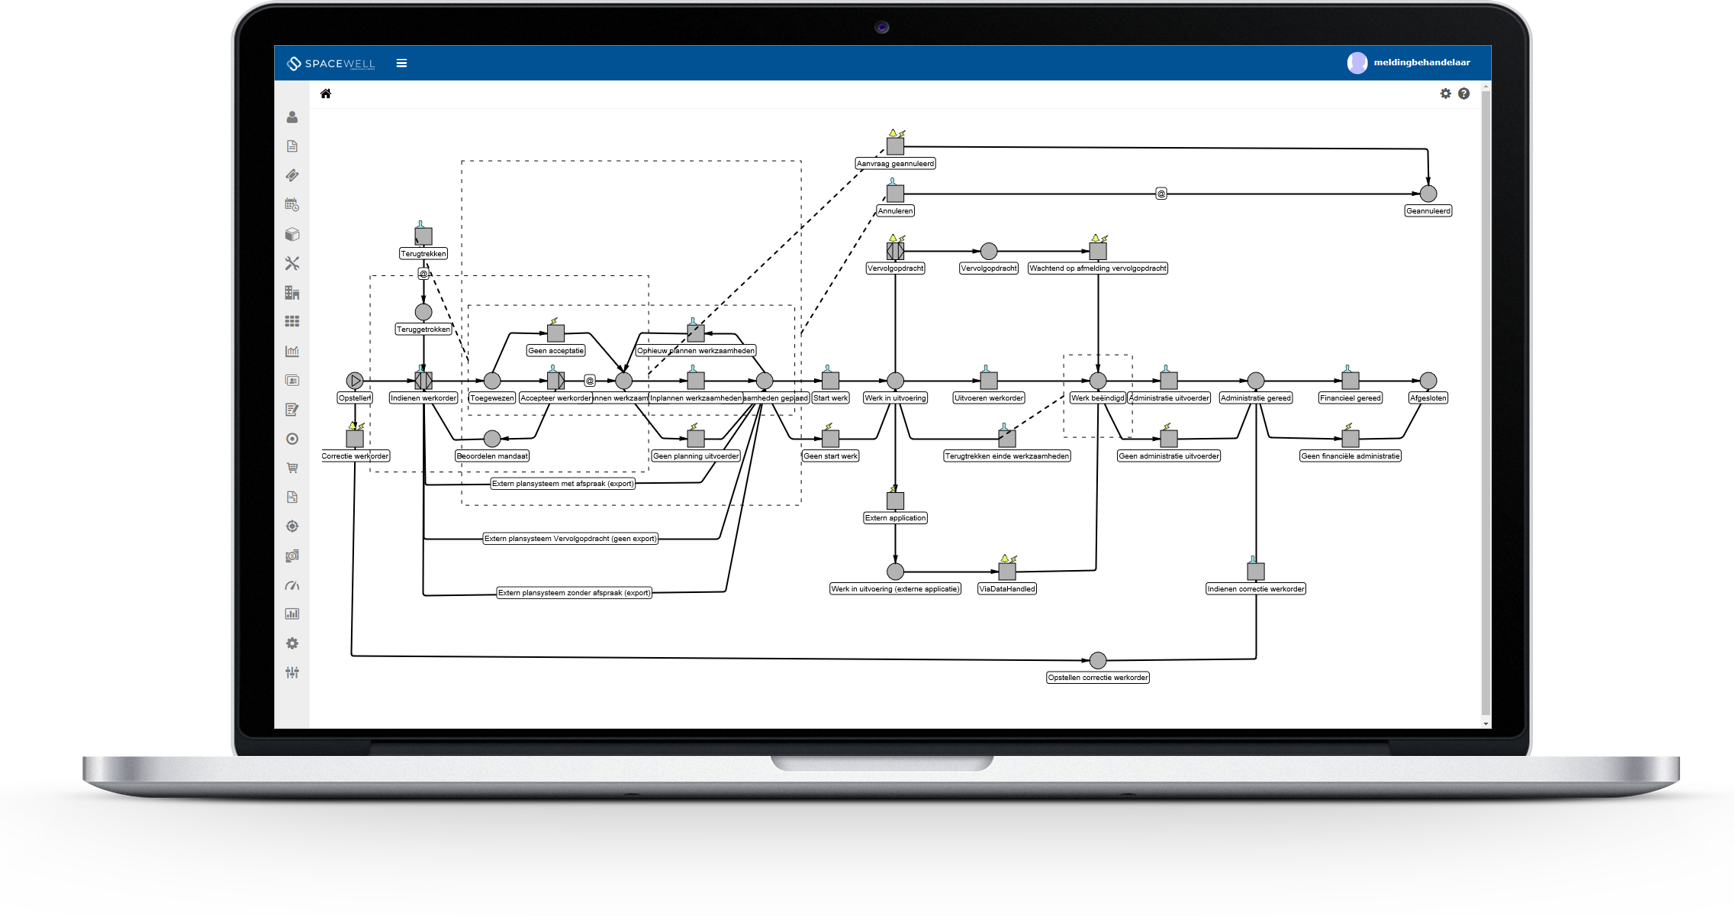 Workflows screenshot